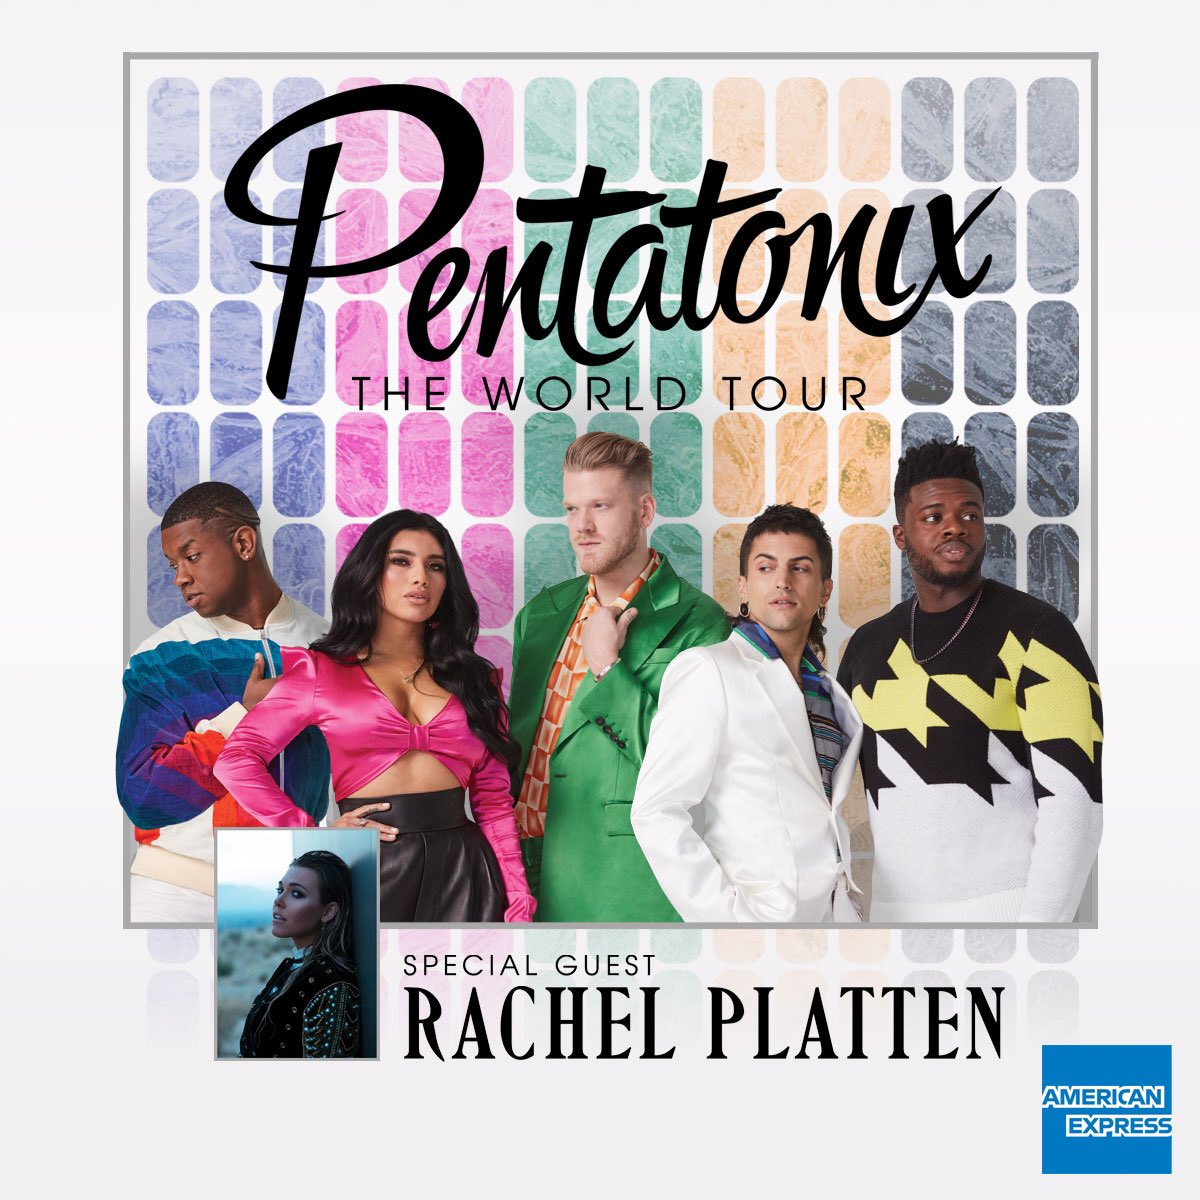 Pentatonix on Twitter: